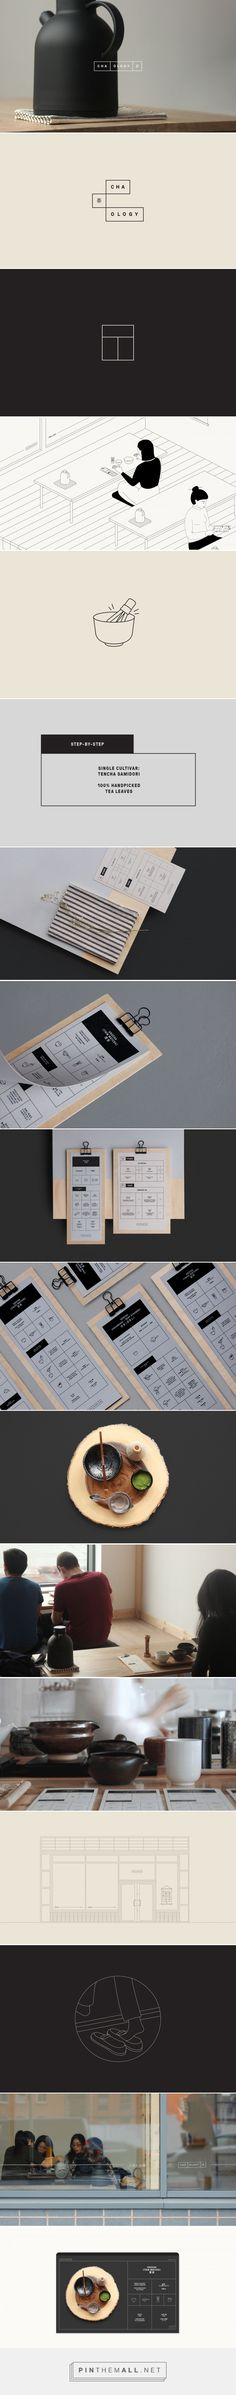 Cha.ology on Behance - created via https://pinthemall.net